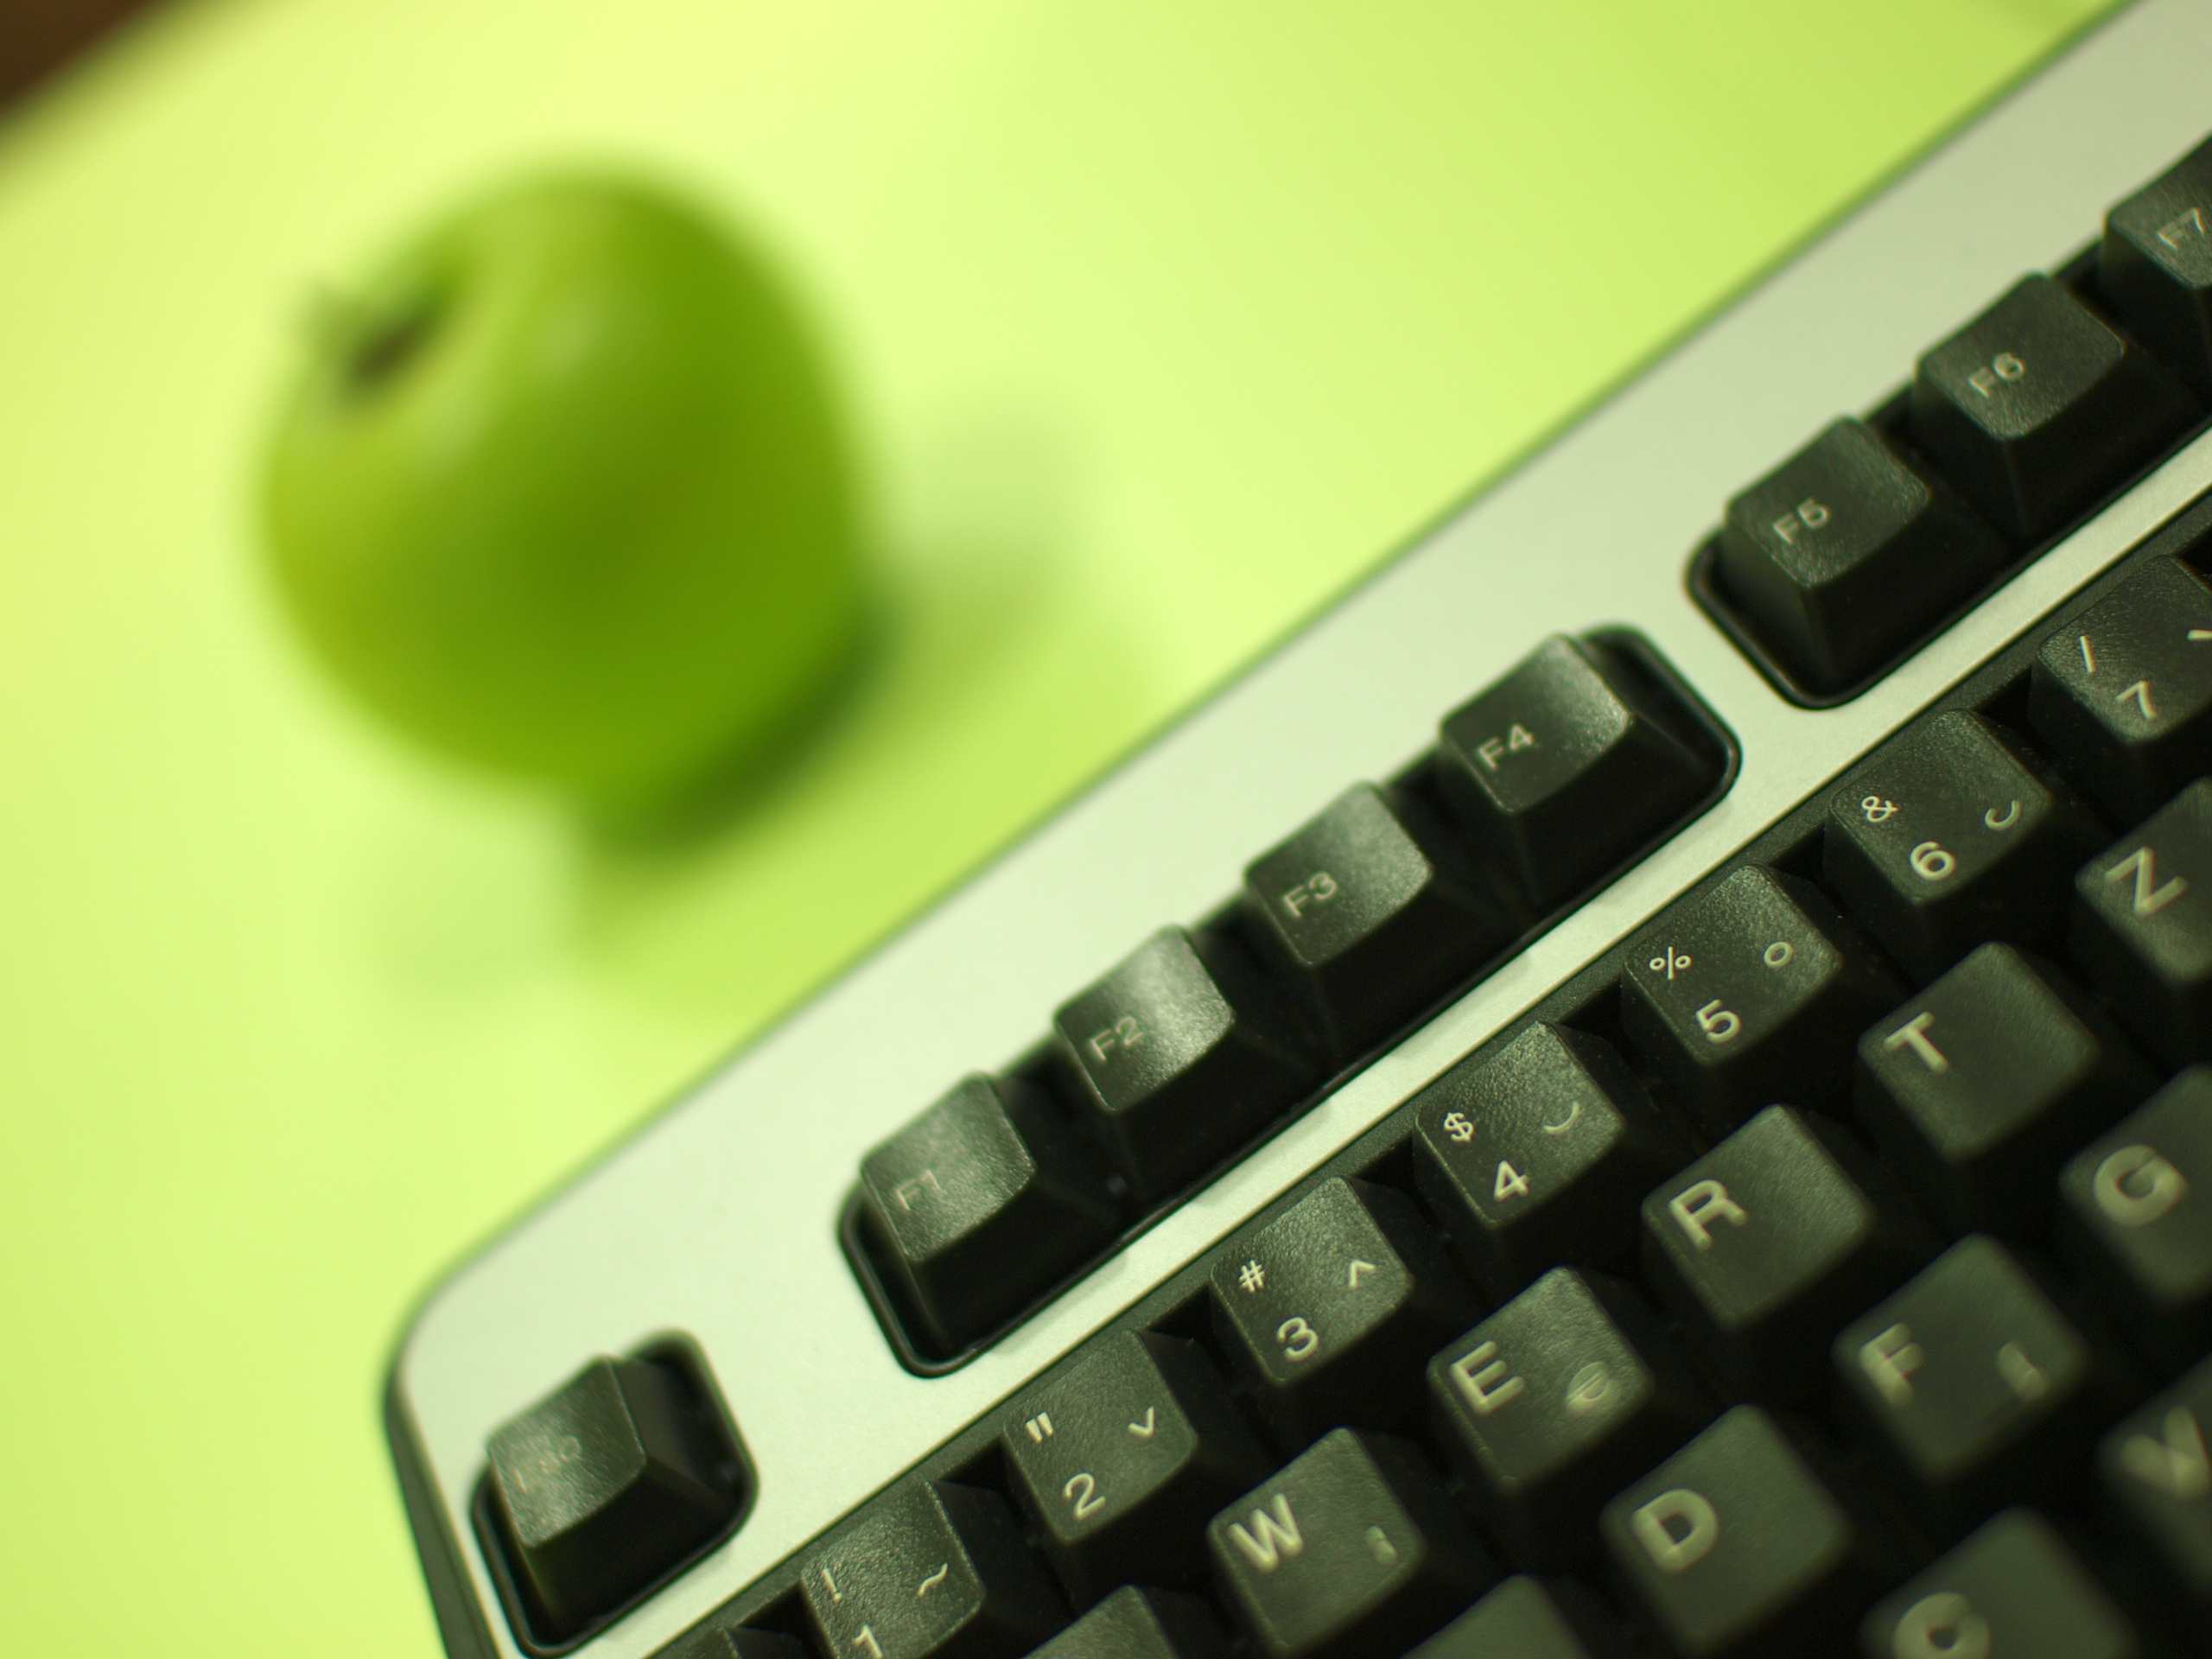 Green apple and computer keyboard